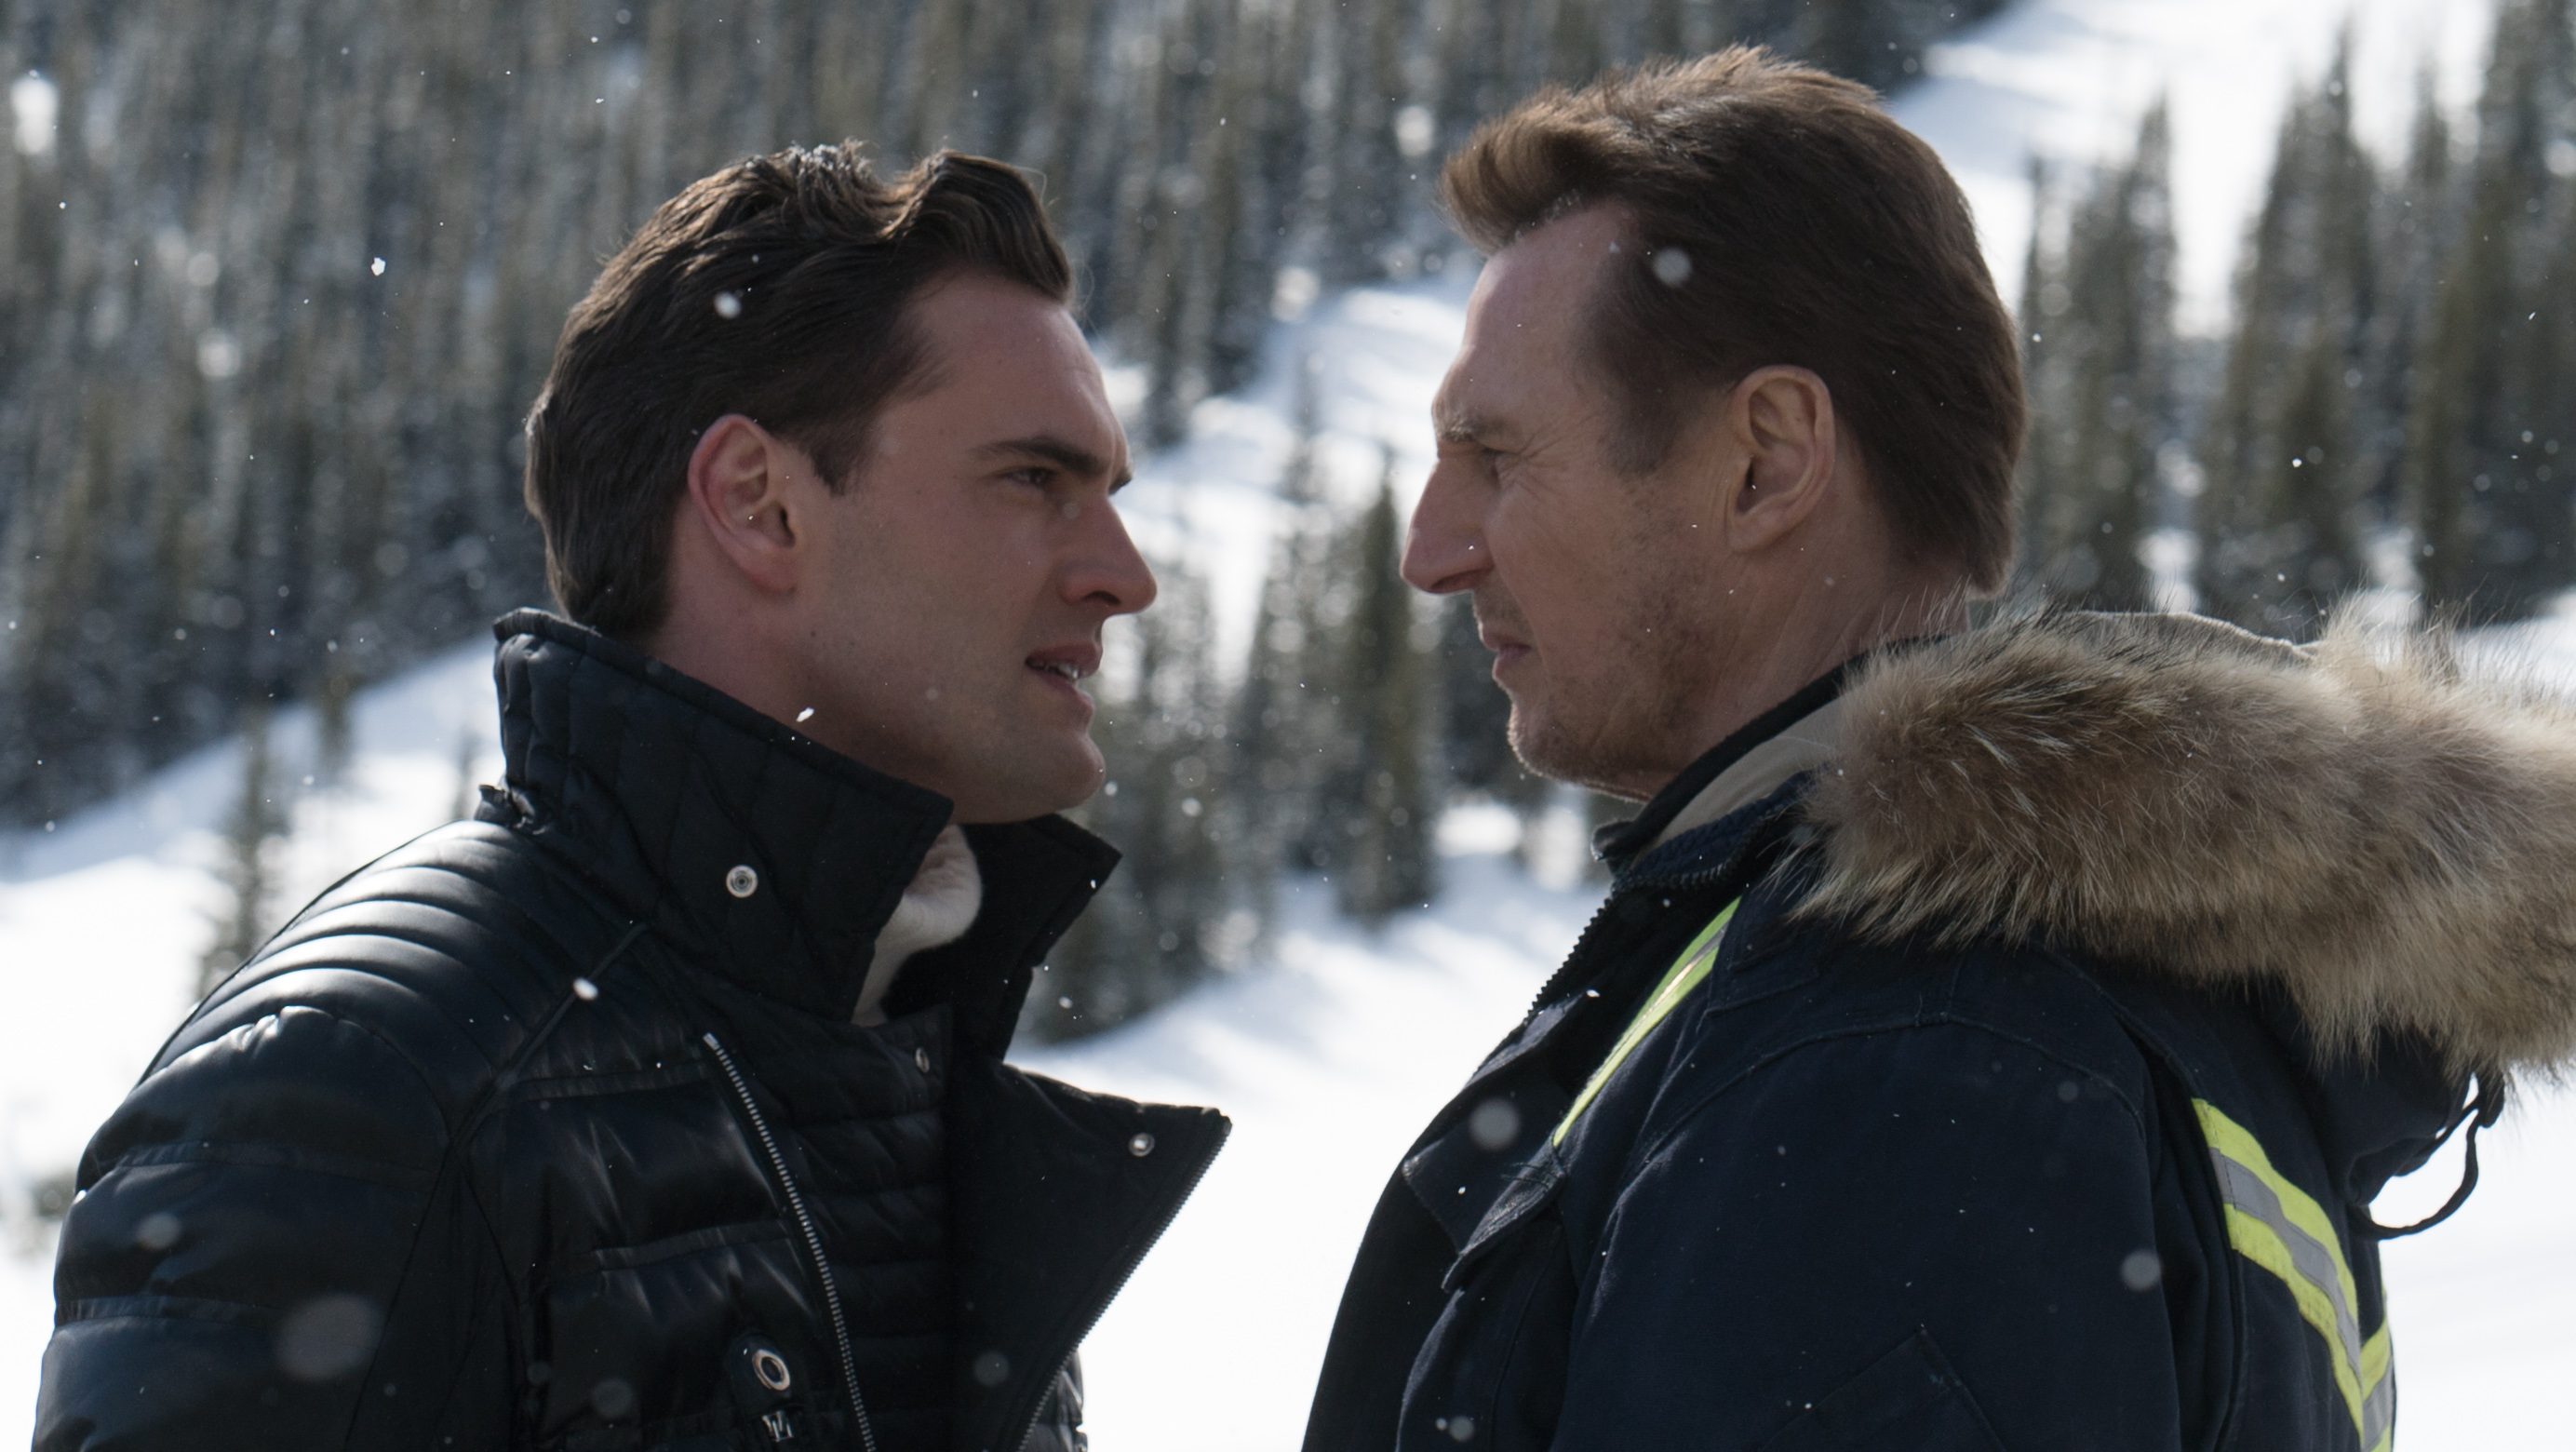 Movie Review: COLD PURSUIT (2019)